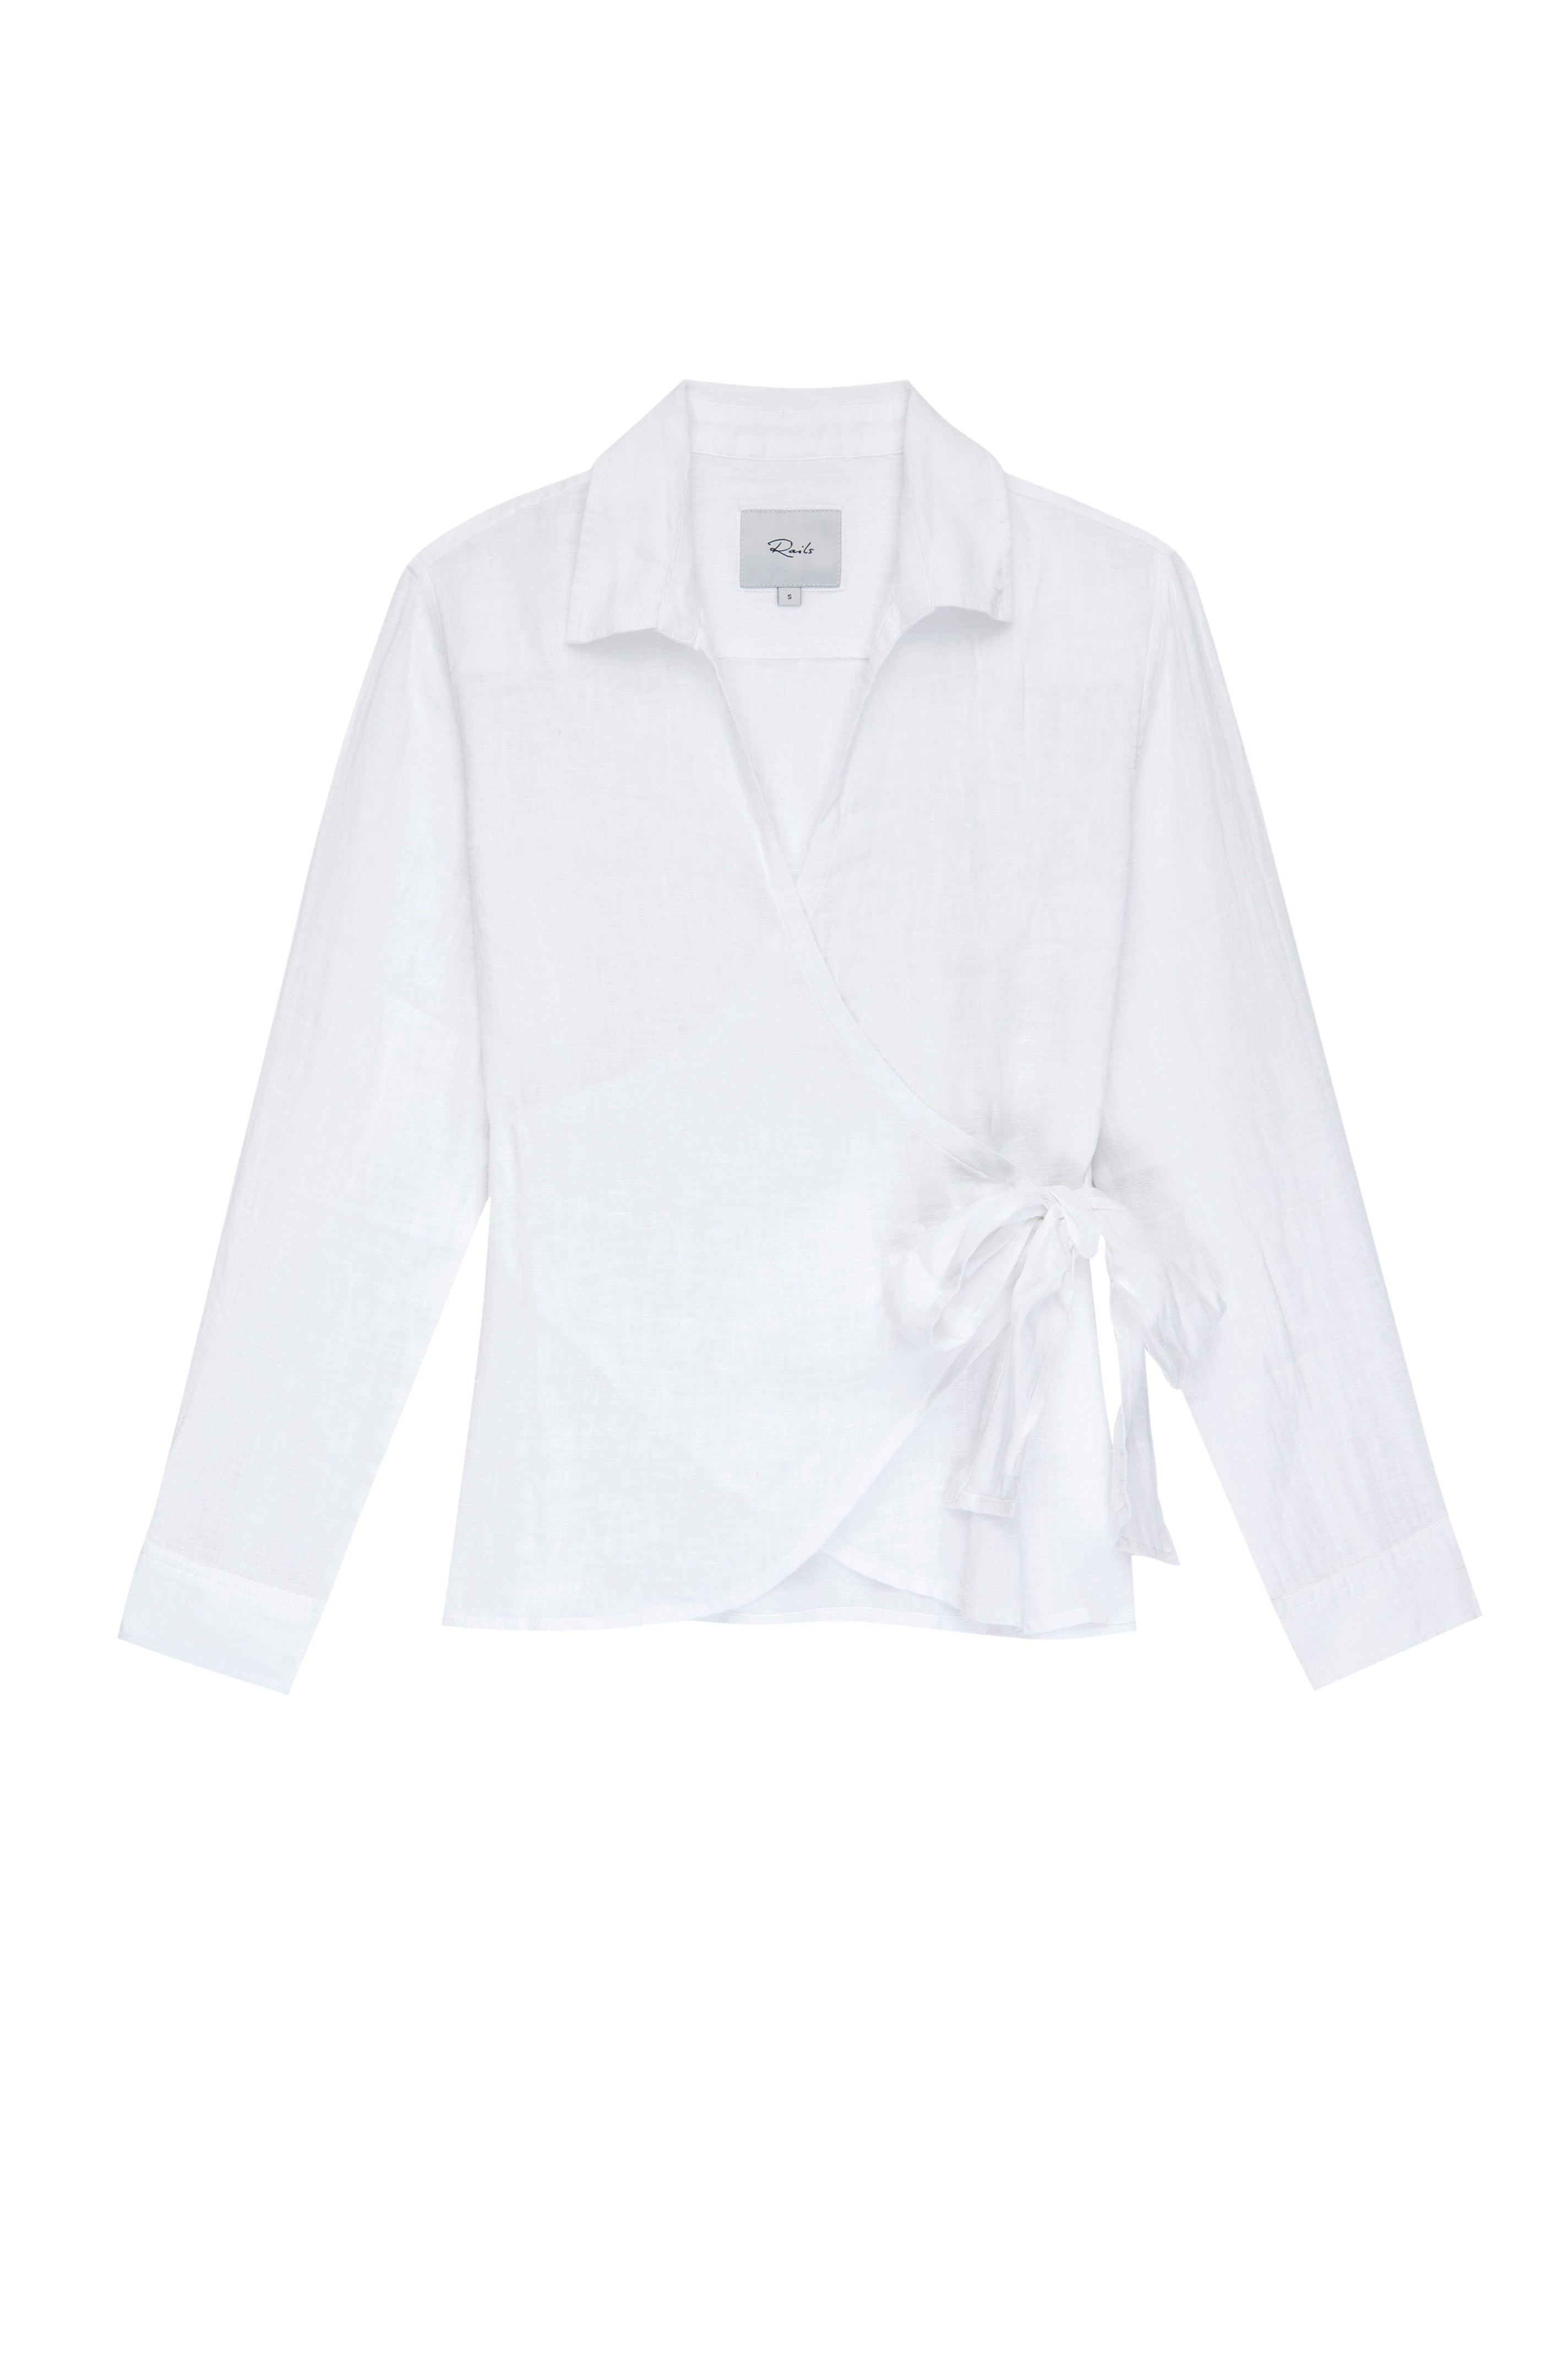 Giselle White, Women's Long Sleeve Wrap Top